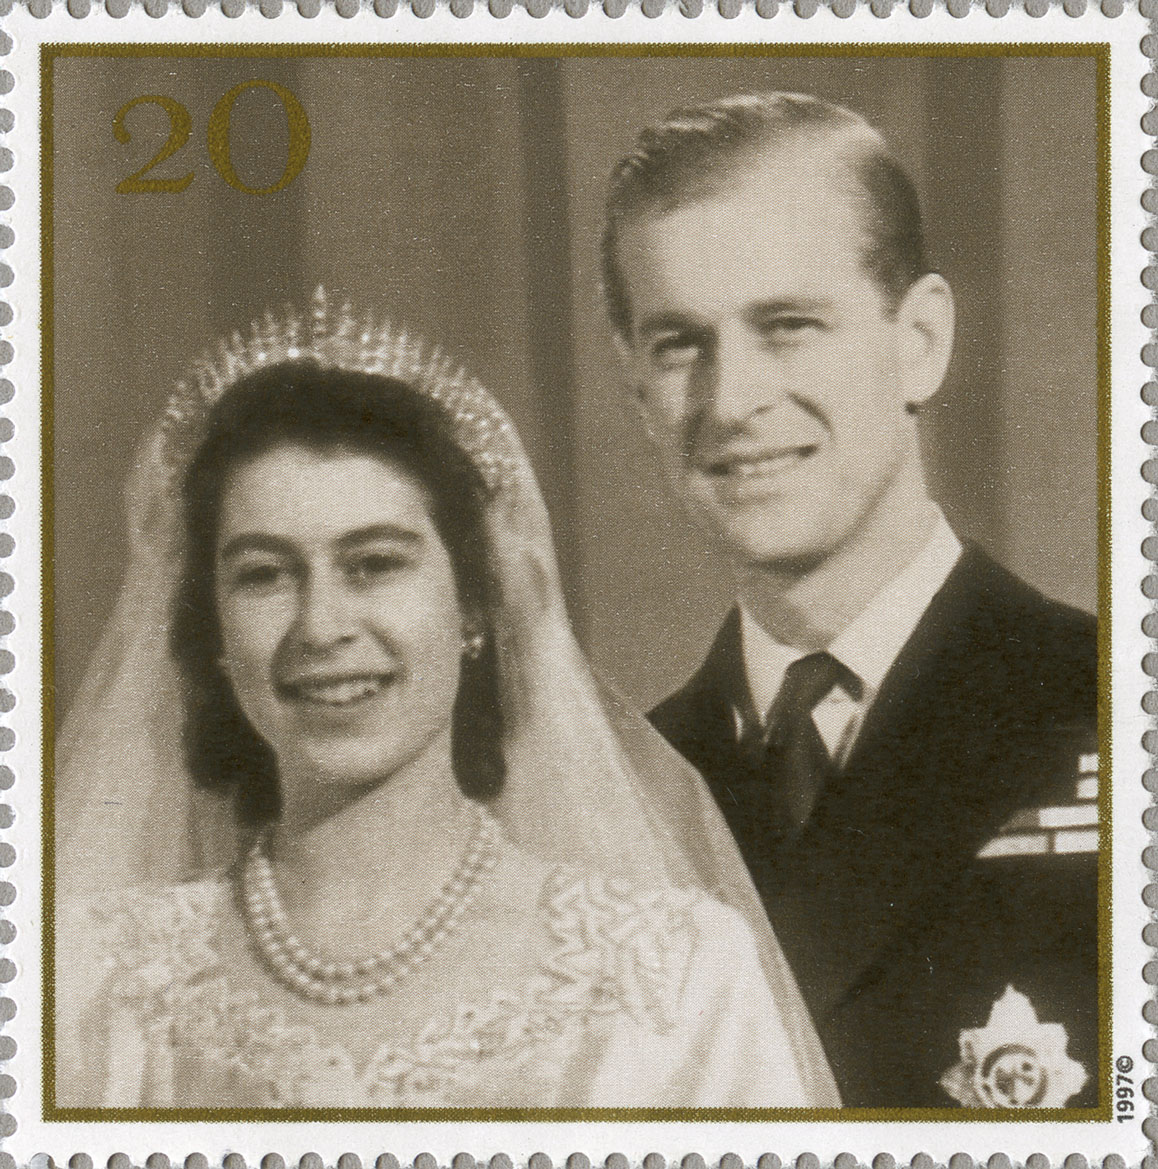 A stamp depicting the black and white photograph of Queen Elizabeth II and the Duke of Edinburgh on their wedding day.